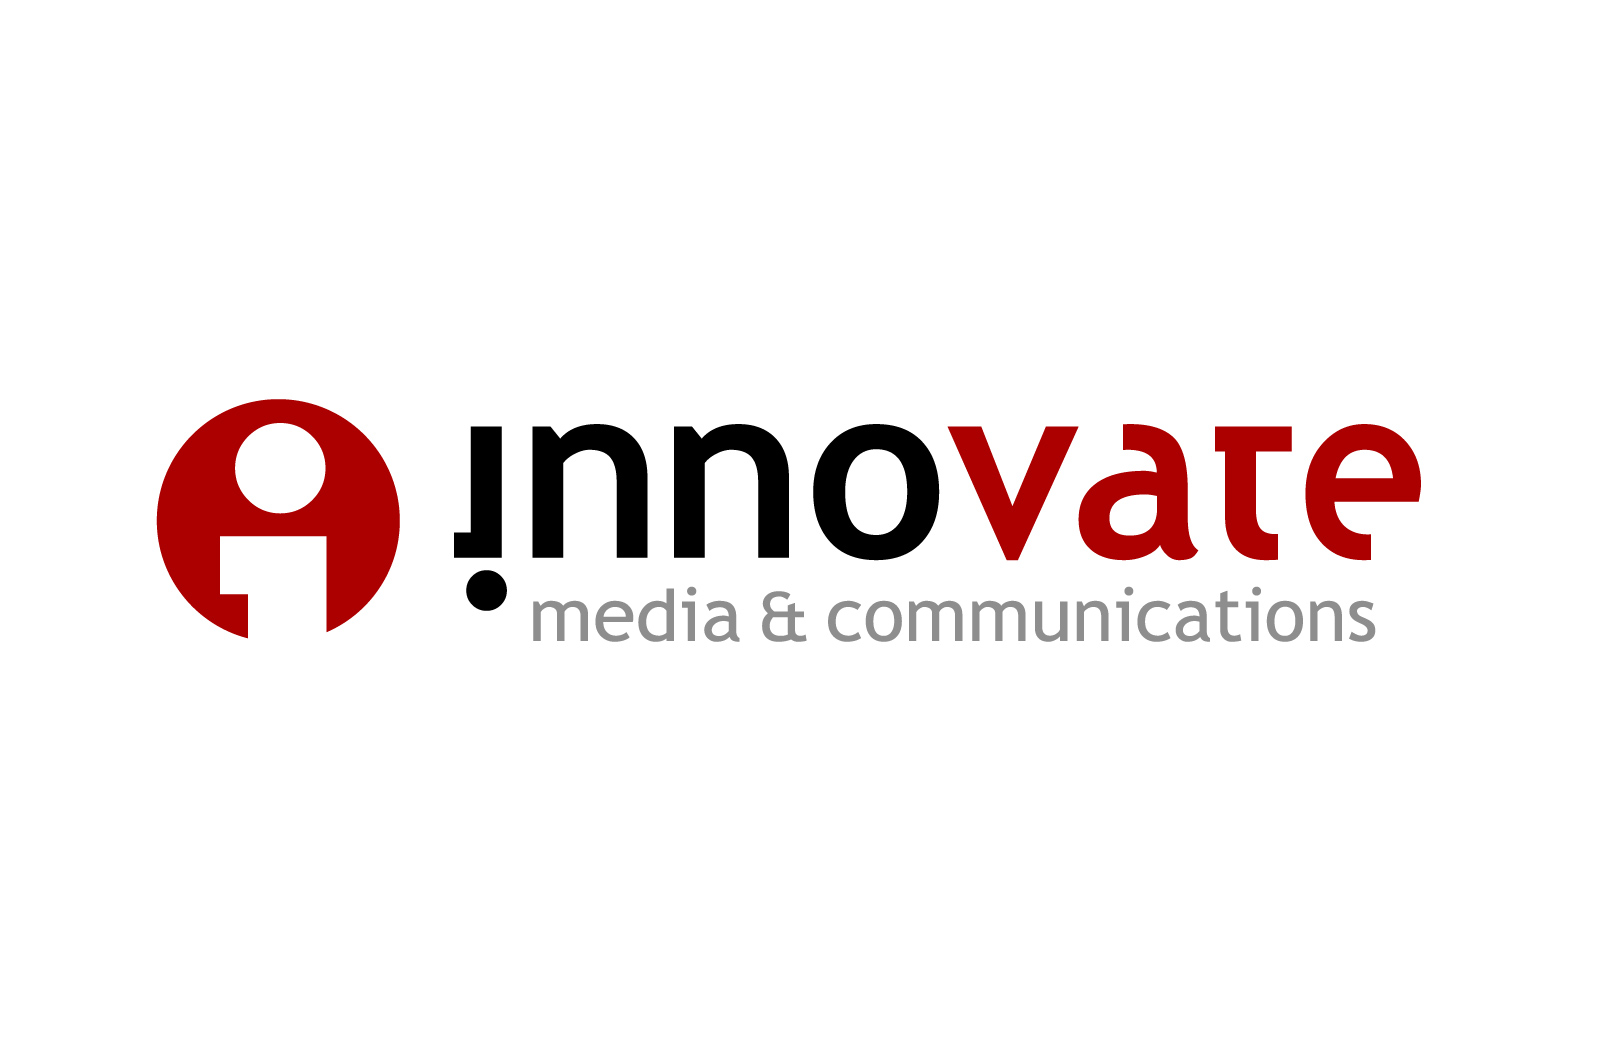 innovate corporate identity and logo design by Creations